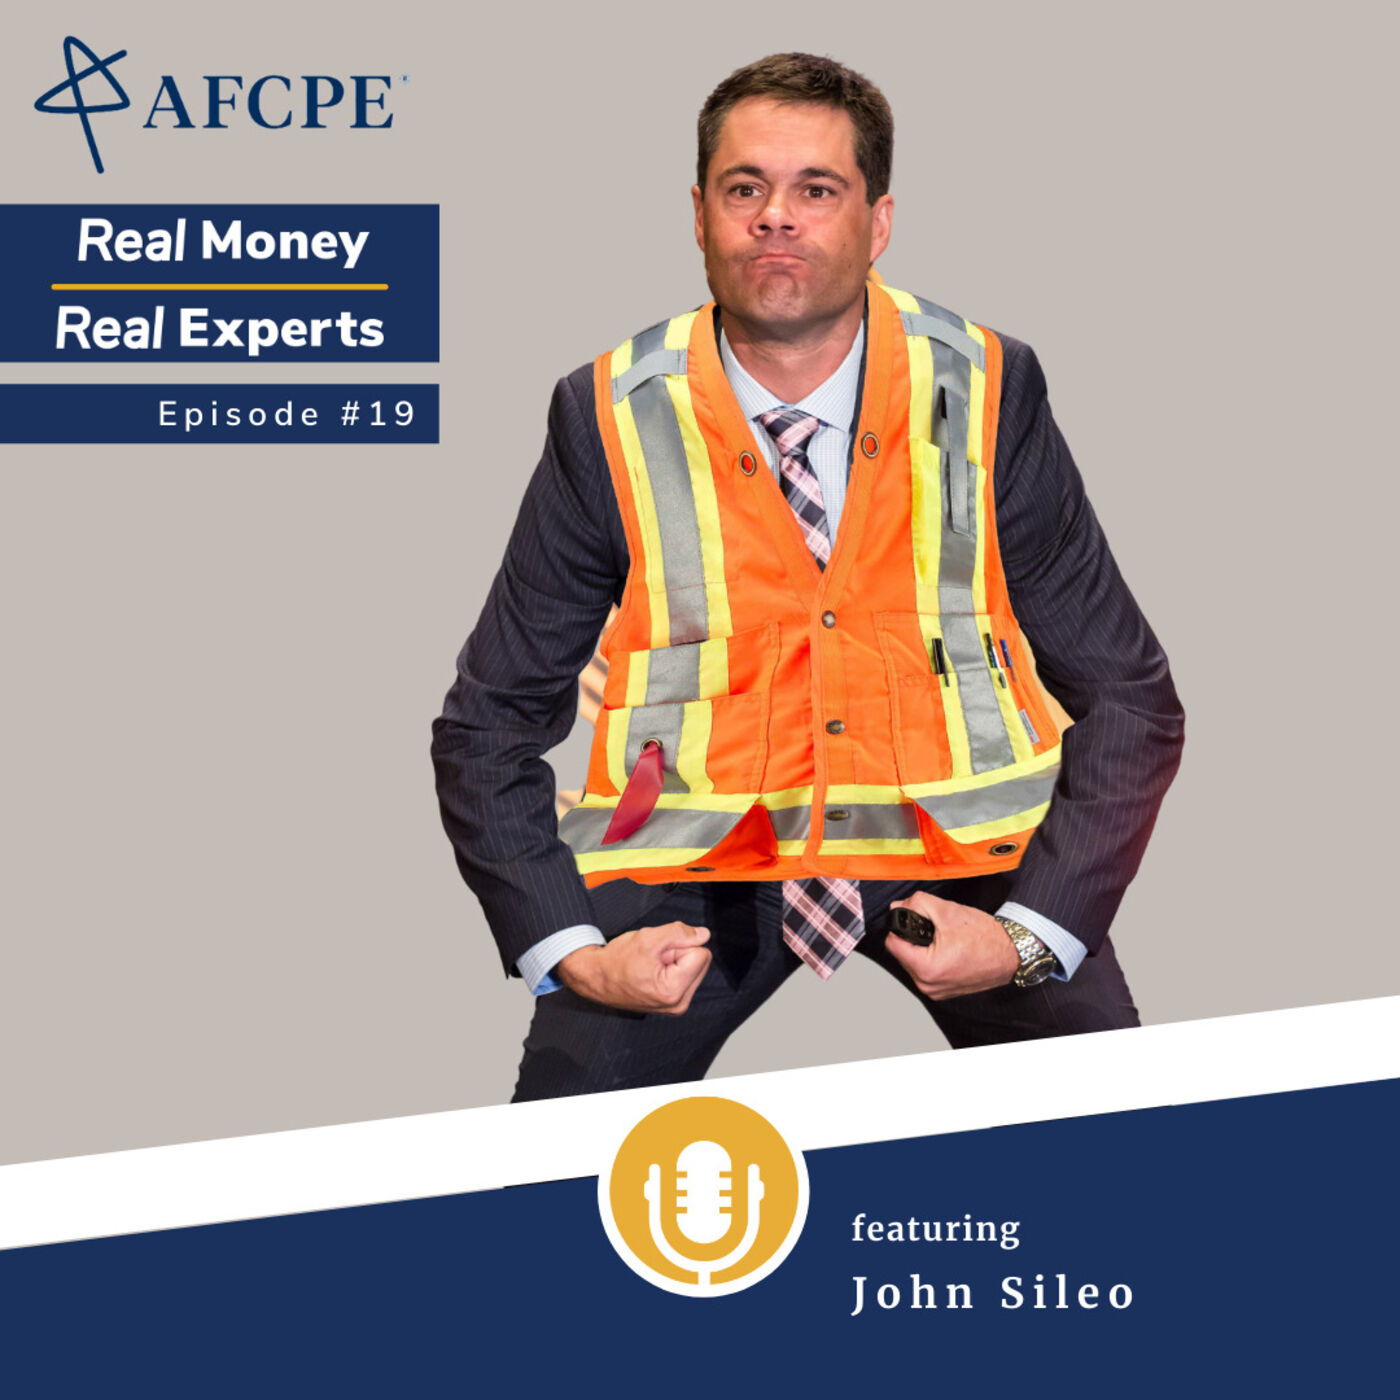 Special Edition: John Sileo's Key to Unlocking Cyber Security